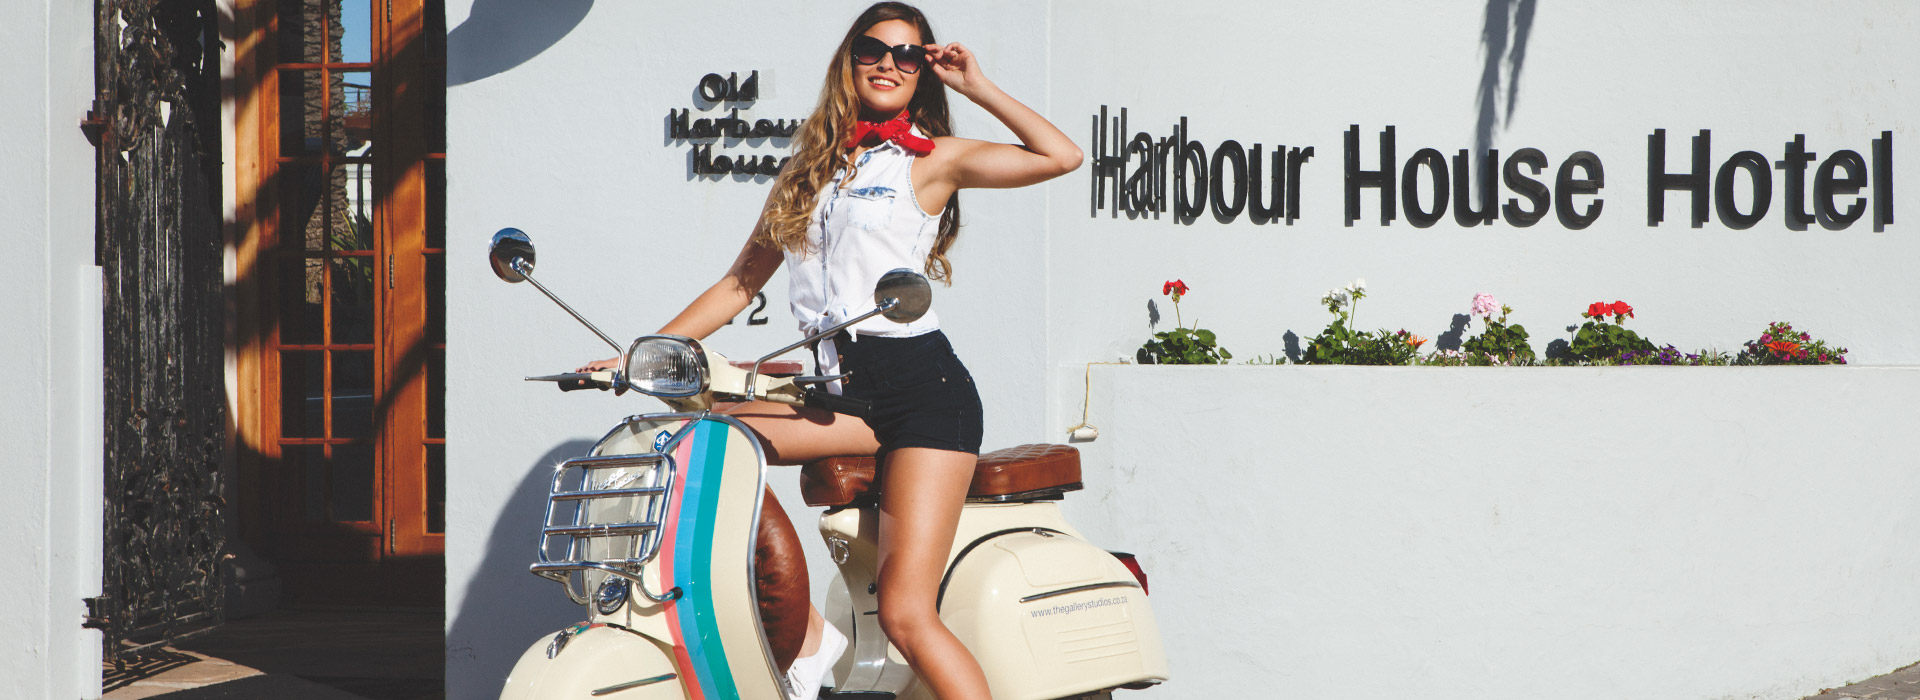 The Gallery Studios - Harbour House Hotel Vespa